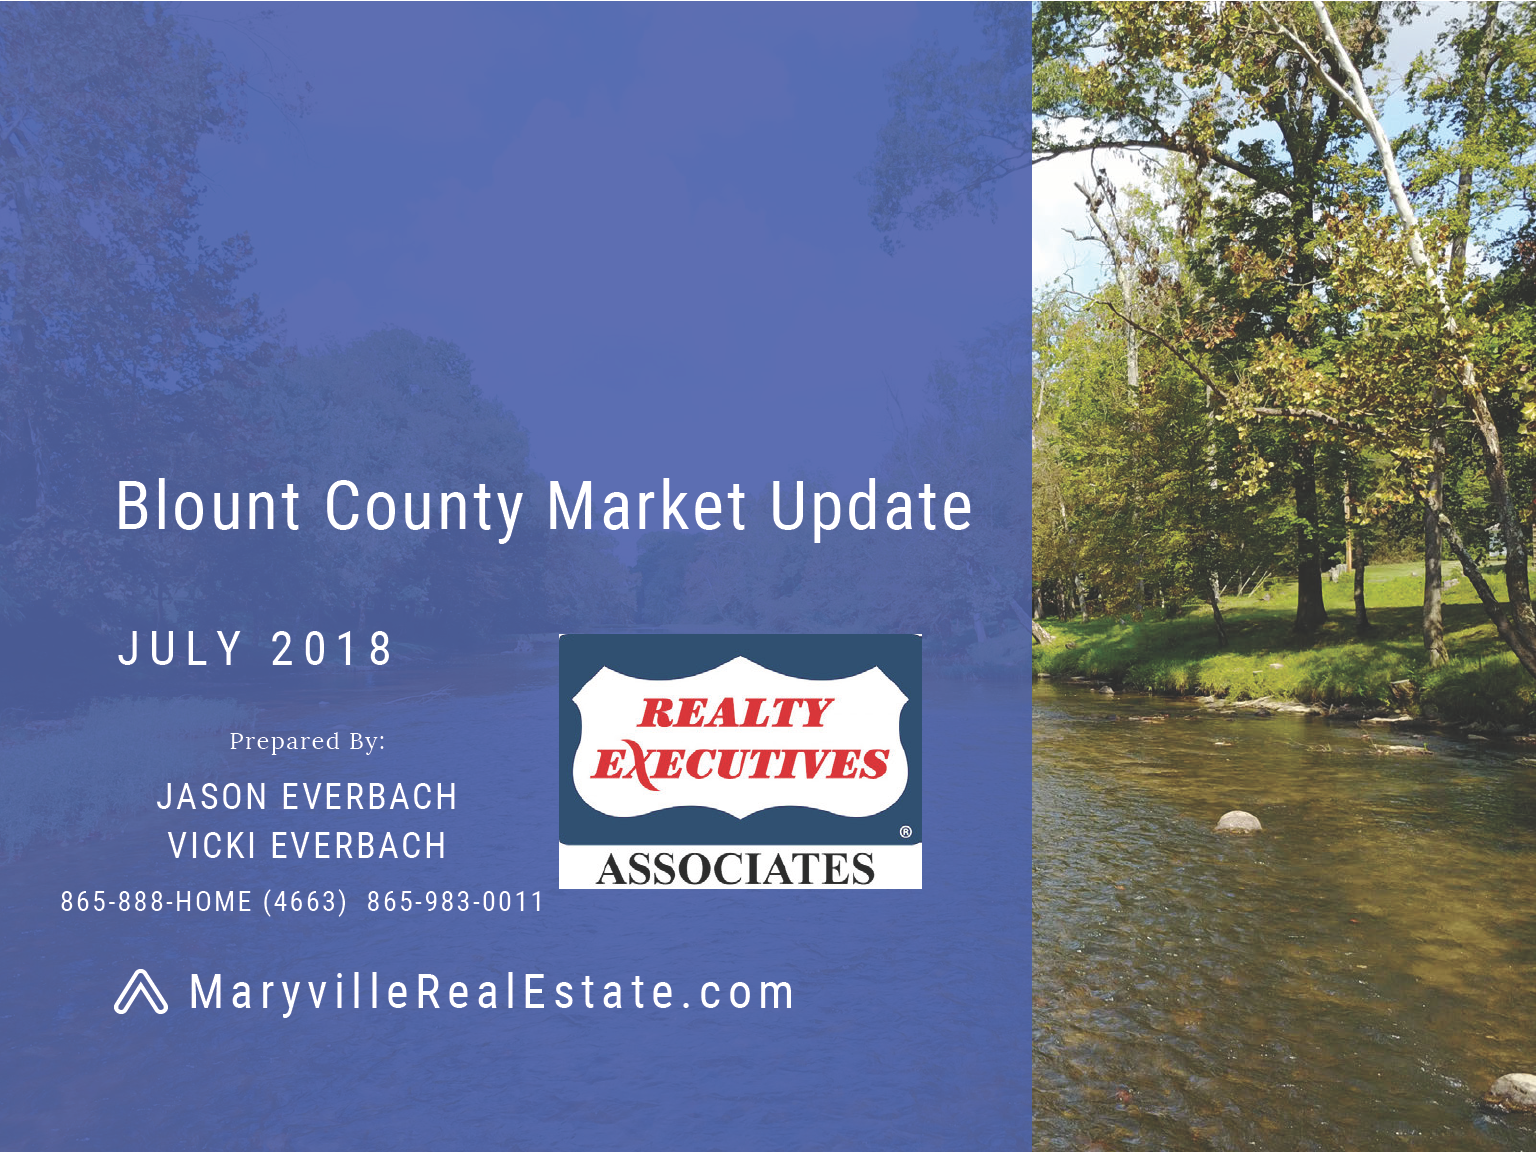 July 2018 Blount County Market Update